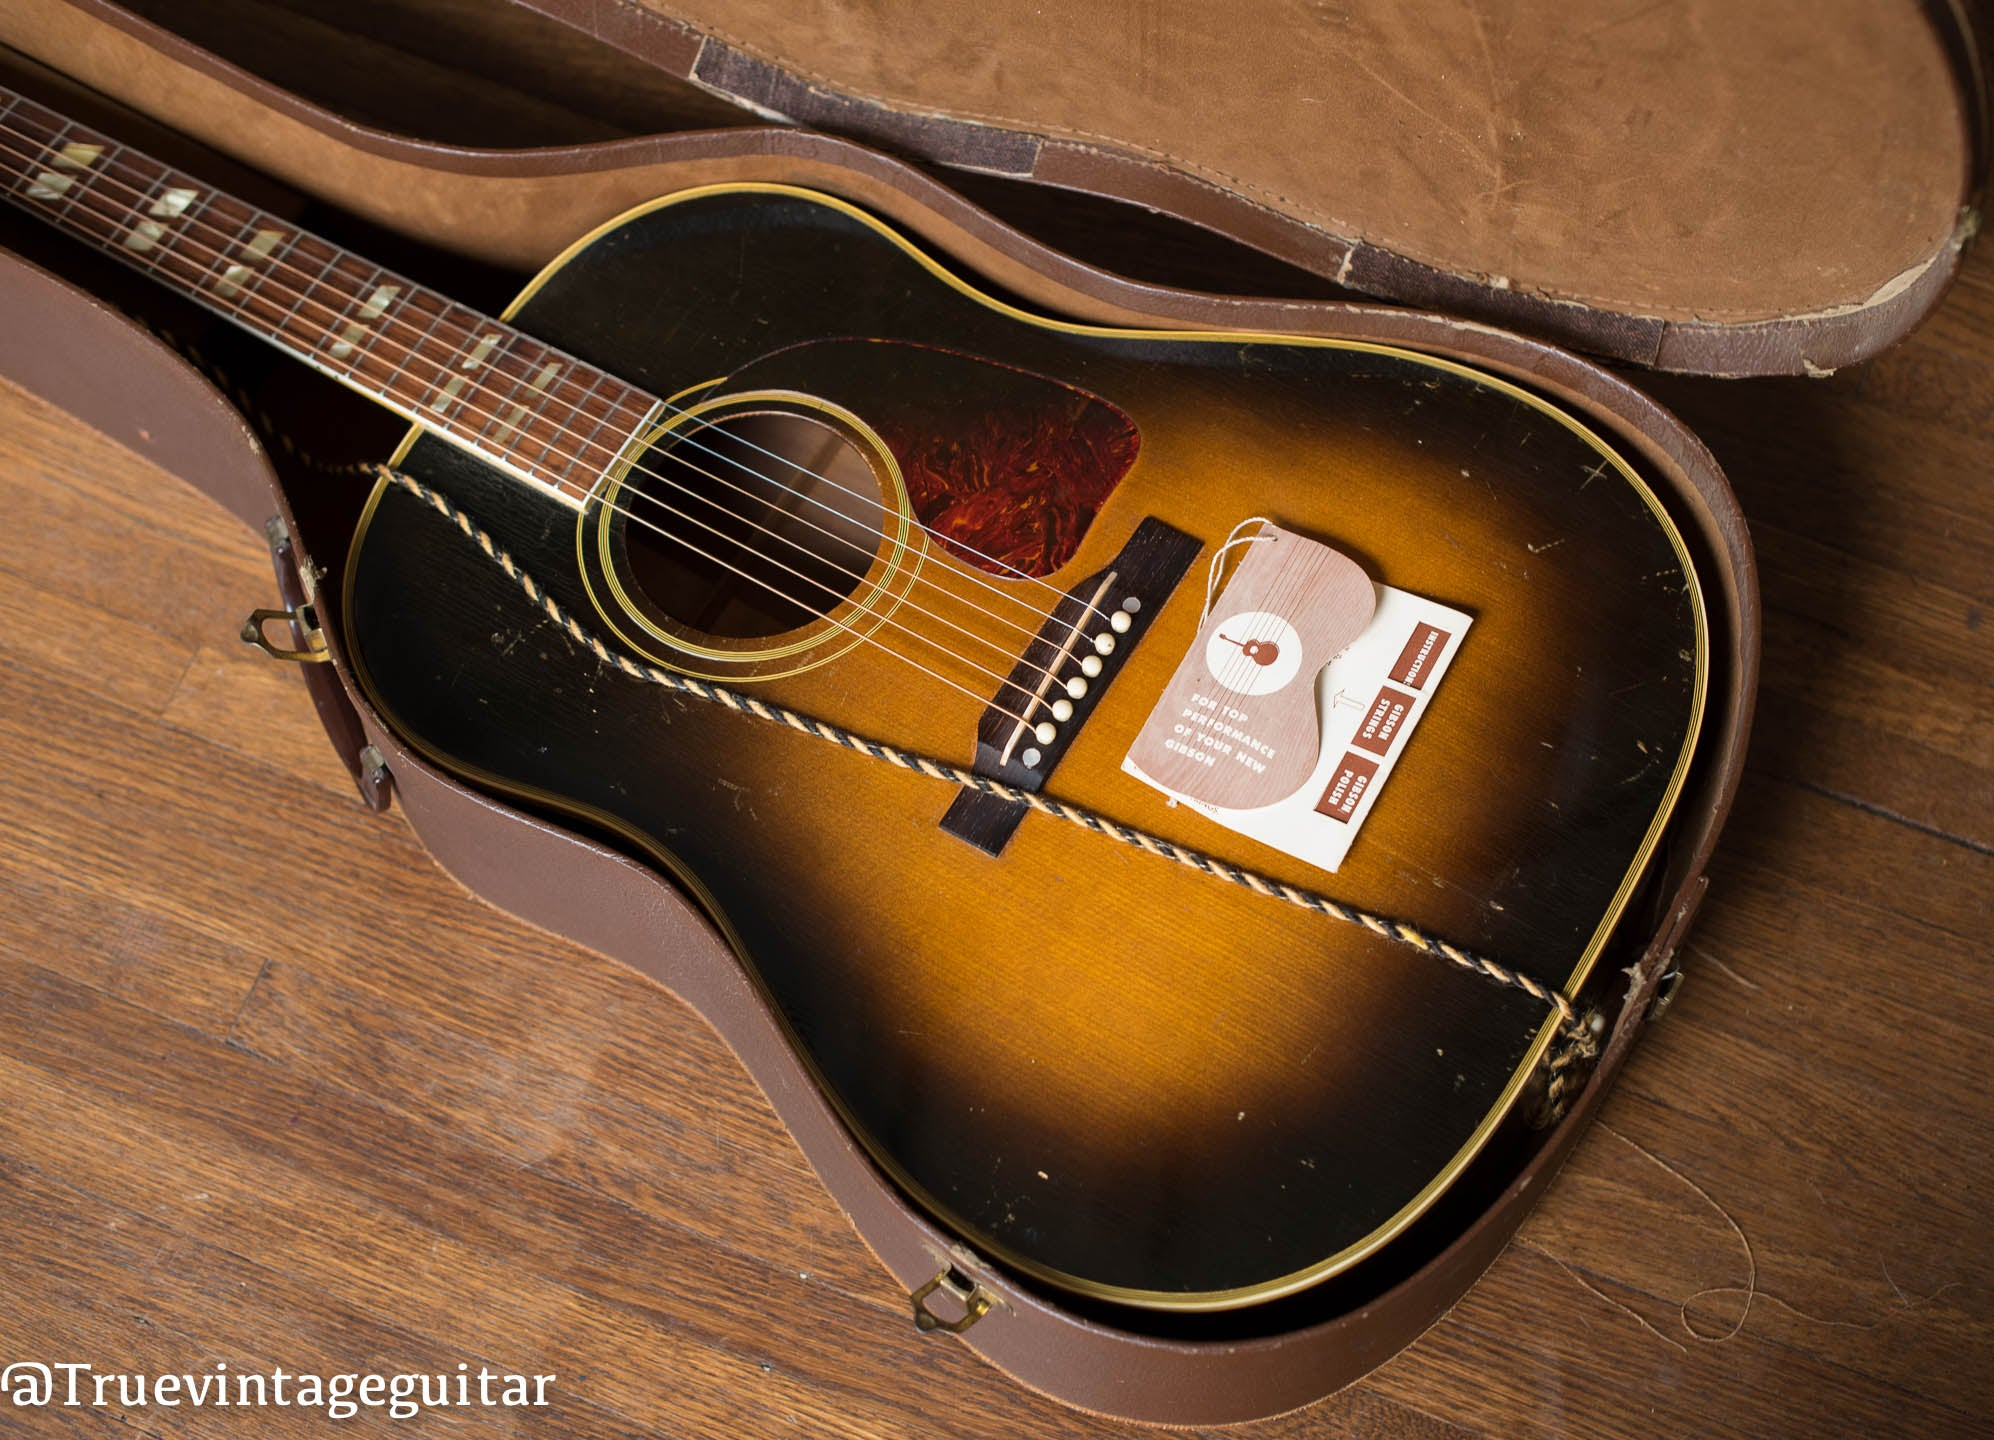 Vintage Gibson SJ acoustic guitar 1950s